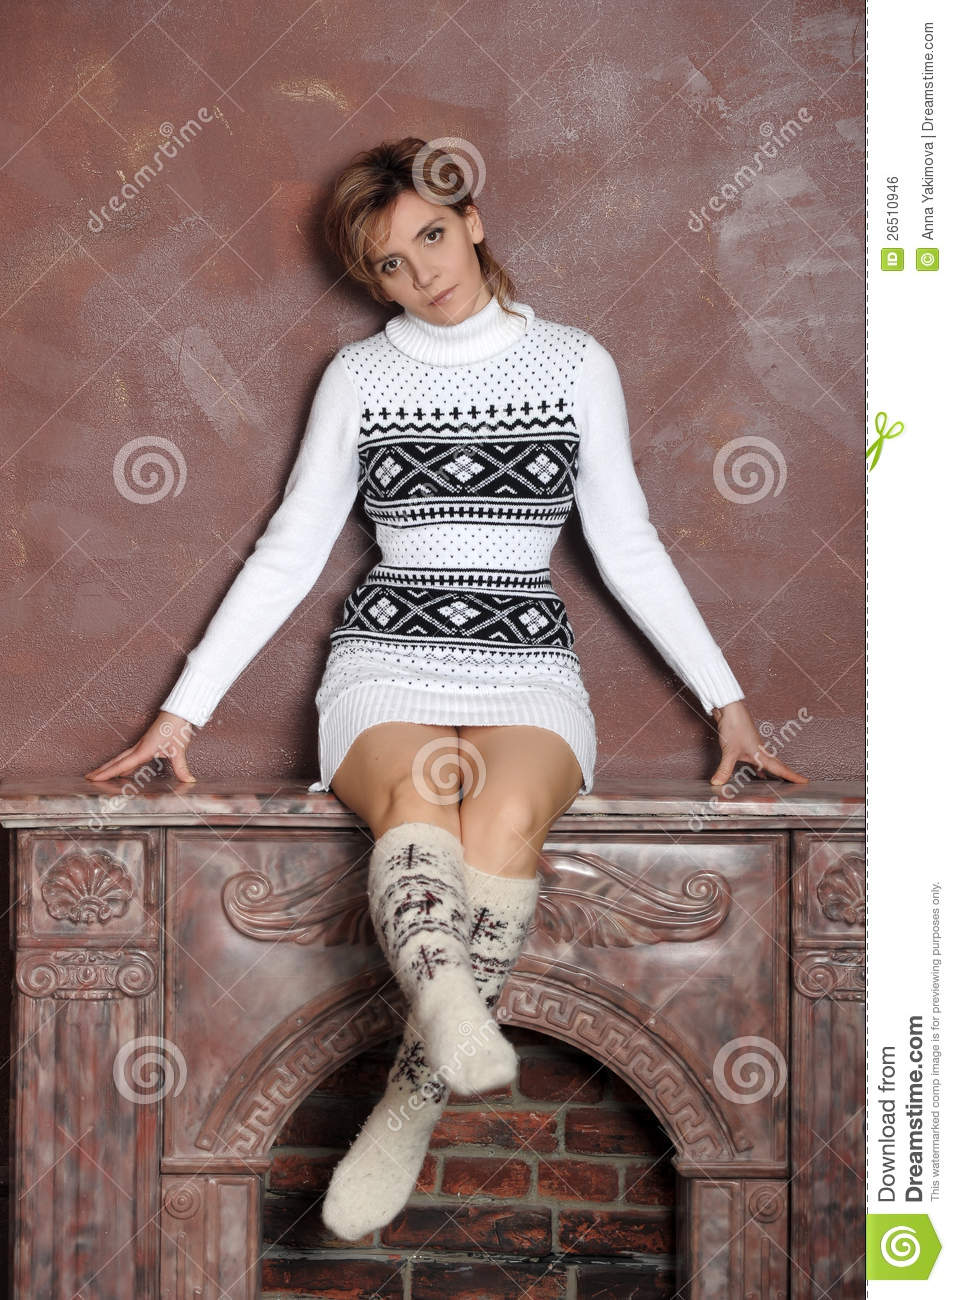 woman sitting in chair sunbrella lounge chairs girl a sweater and socks stock photo - image: 26510946